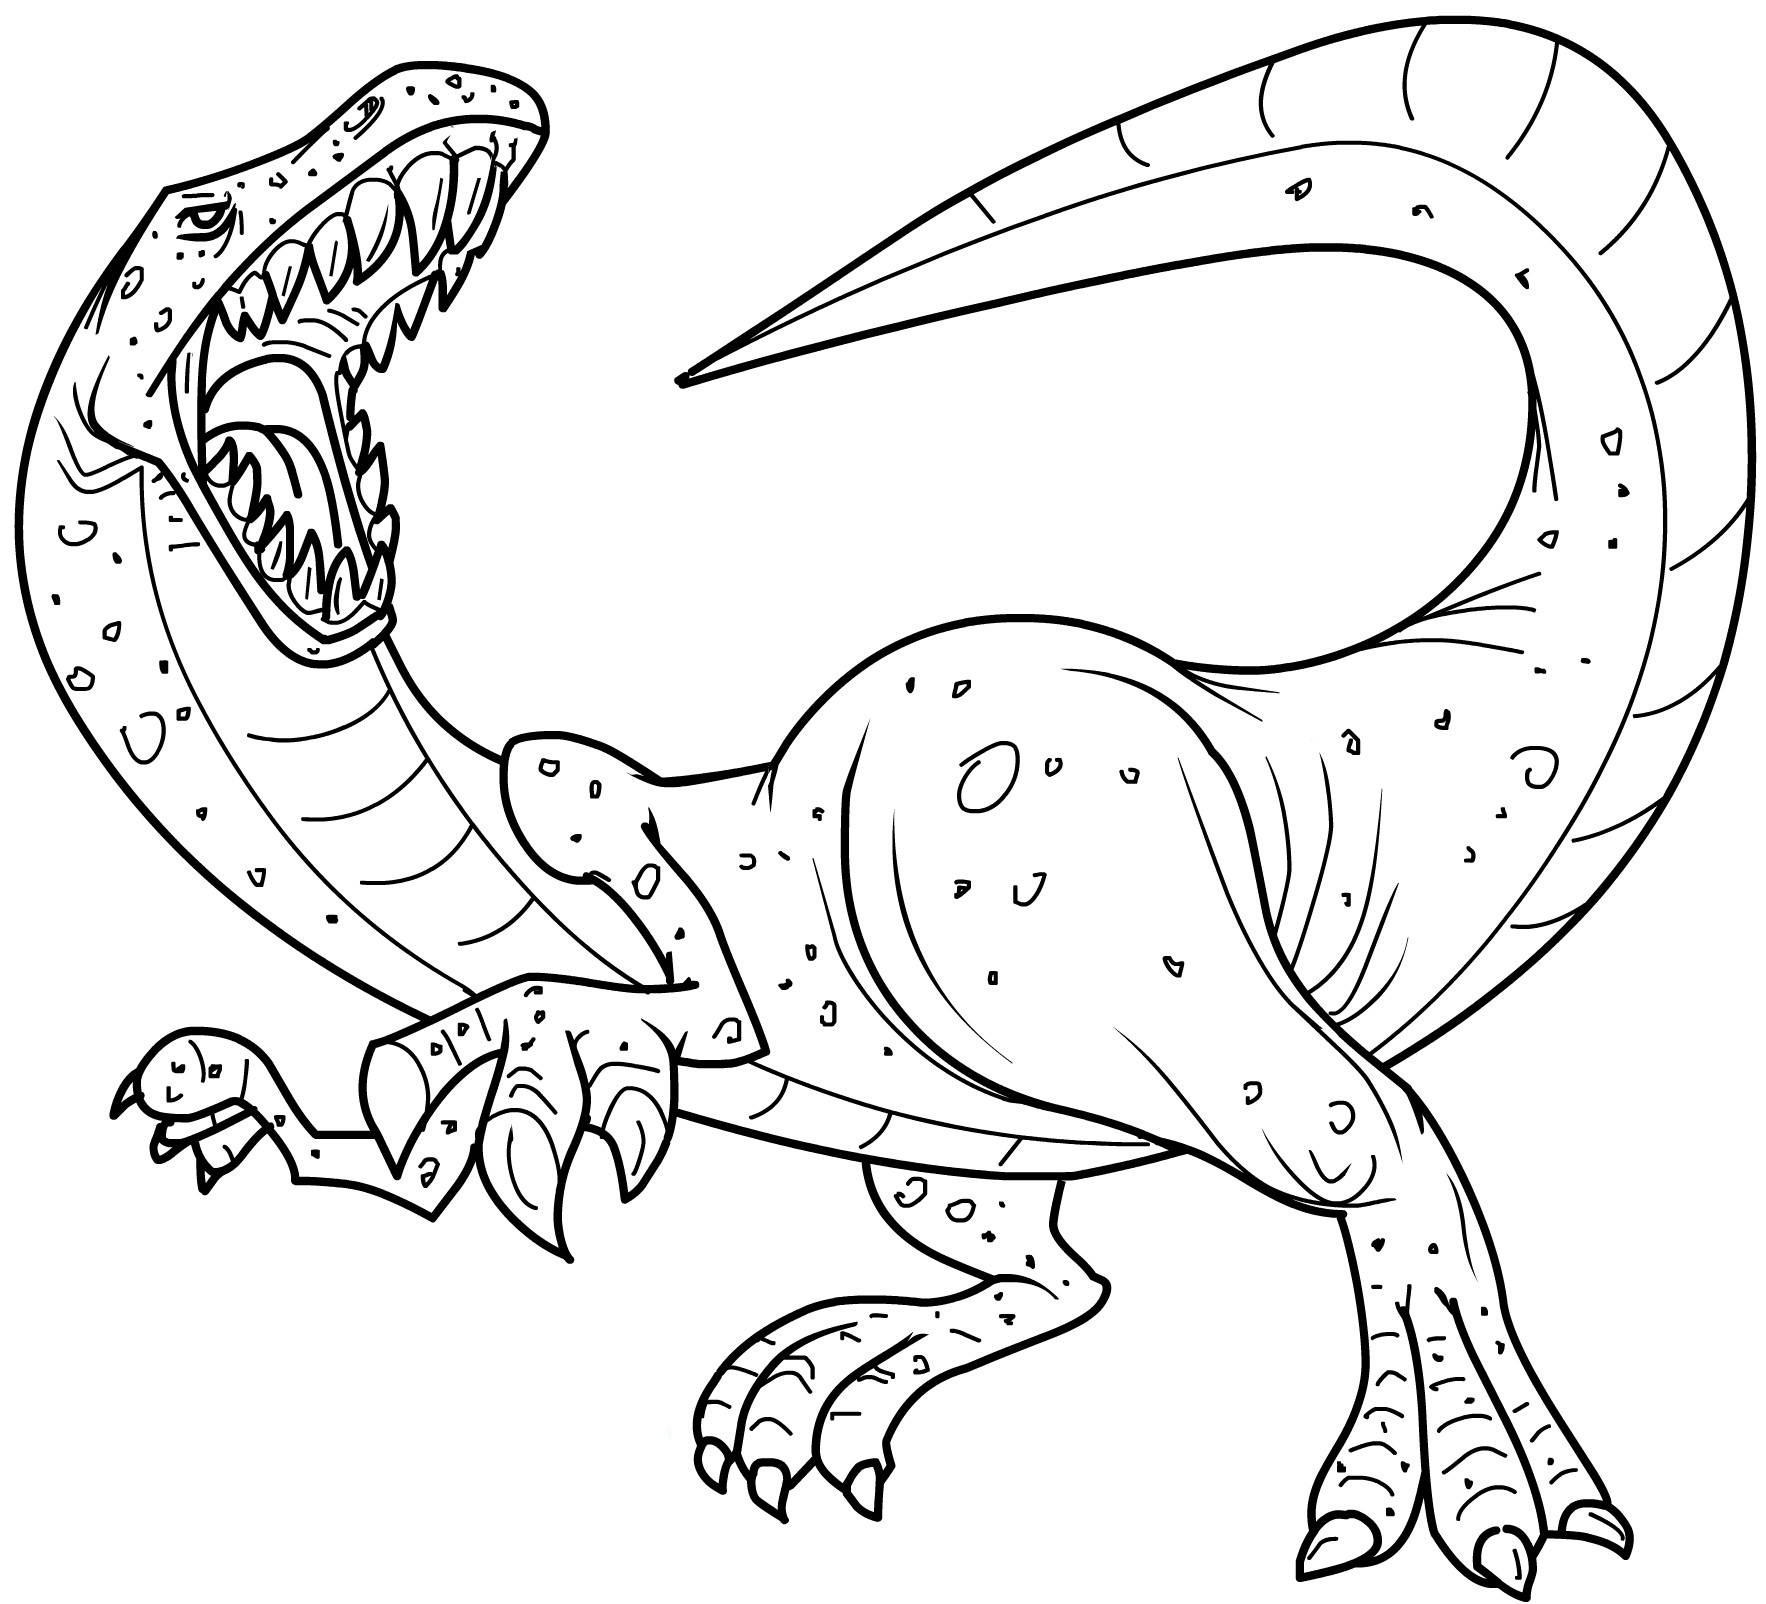 4 Images of Dinosaurs Kids Coloring Pages Free Printables